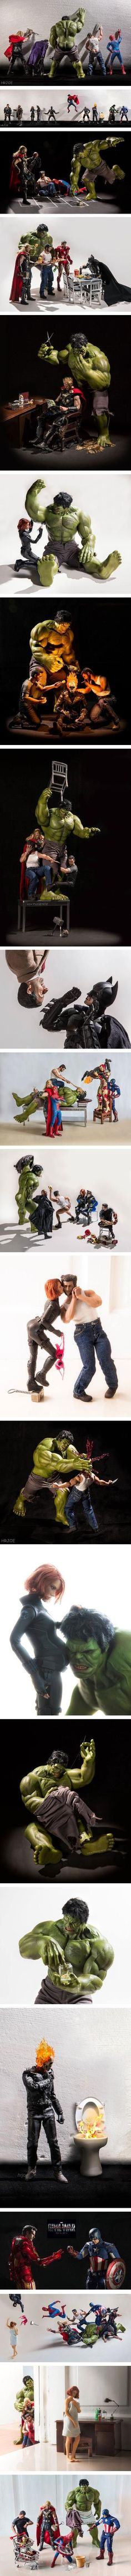 The Secret Life of the Superheroes. - superhero toys photography by Edy Hardjo, an Indonesian.: